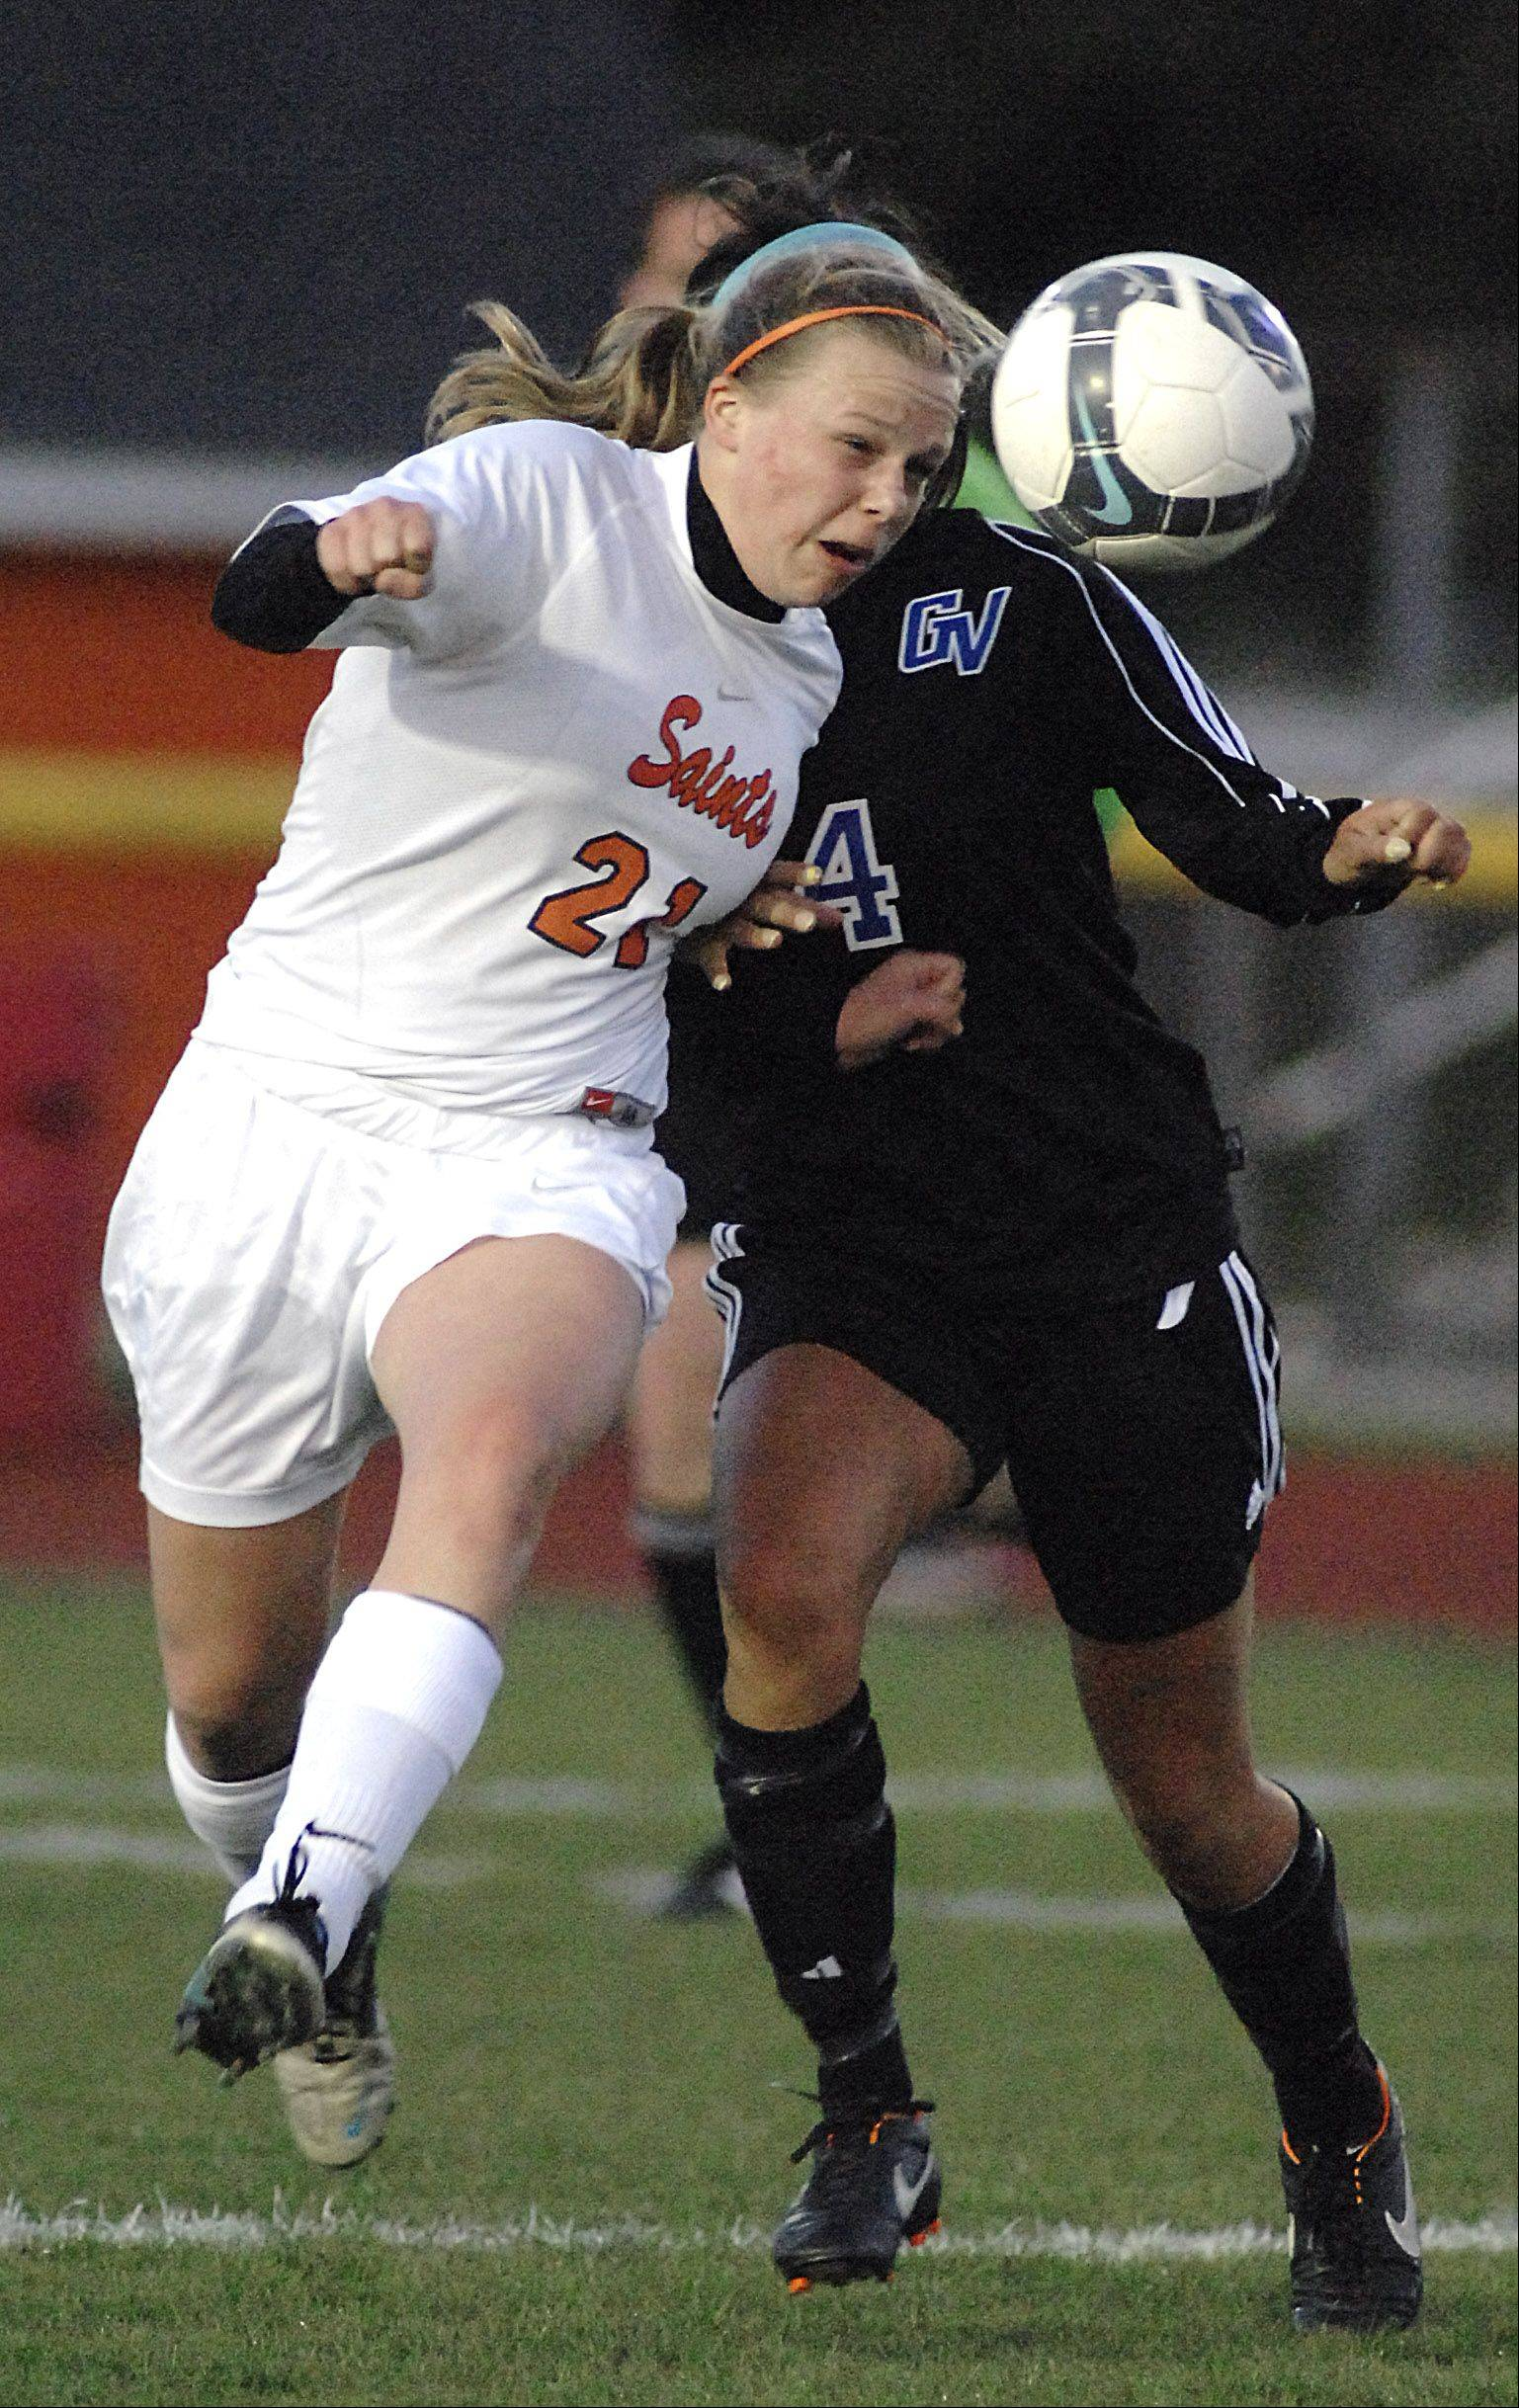 St. Charles East's Amanda Hilton heads the ball before Geneva's Kristin Rodriguez in the first half on Wednesday, April 4.